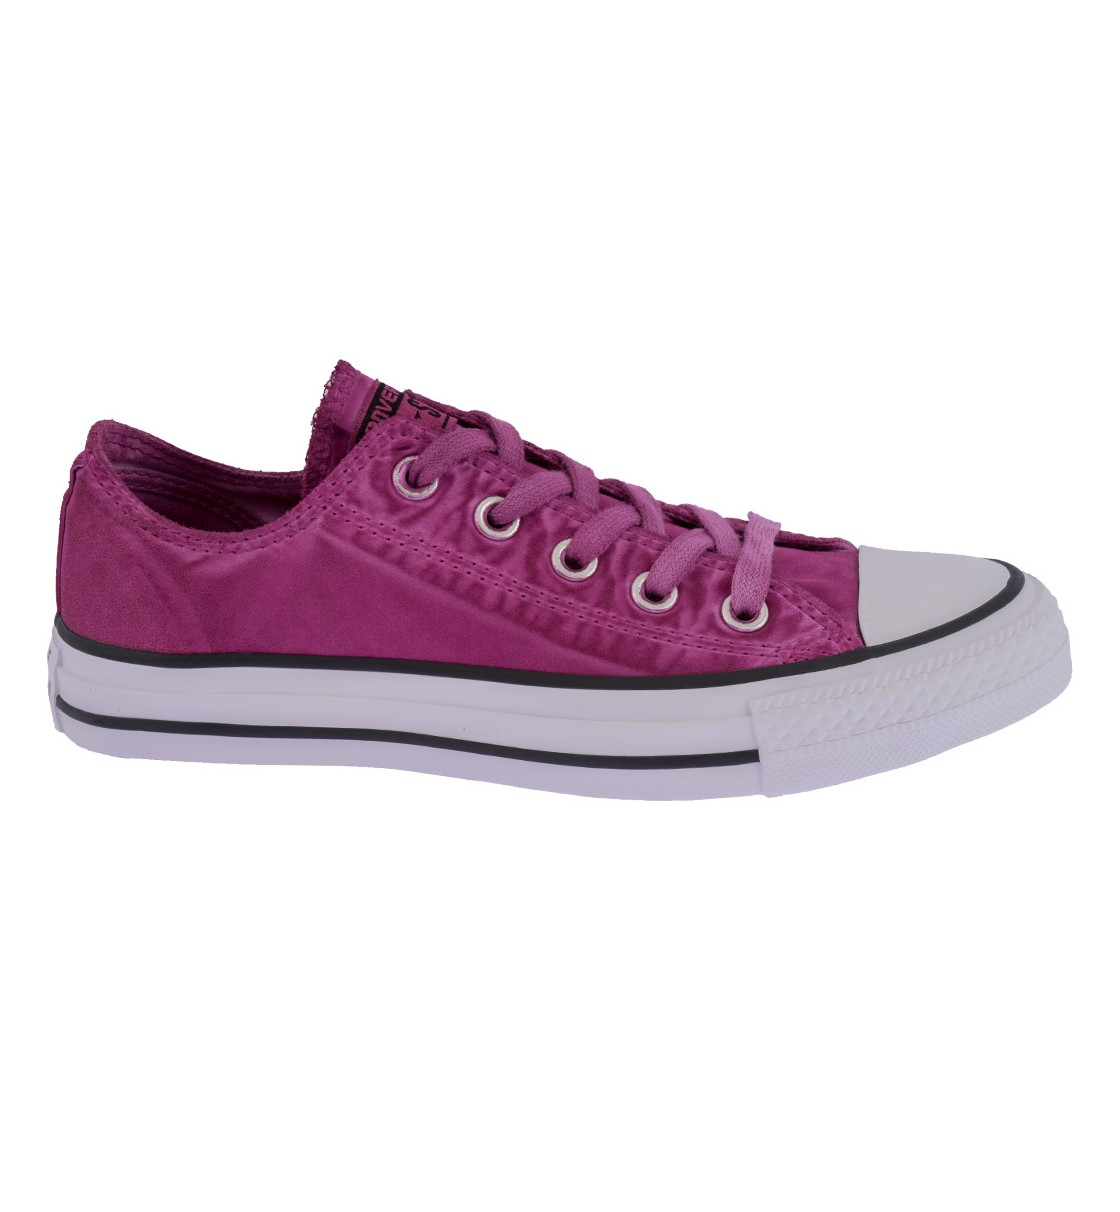 Converse Unisex Παπούτσι Μόδας Chuck Taylor All Star Ox 155389C